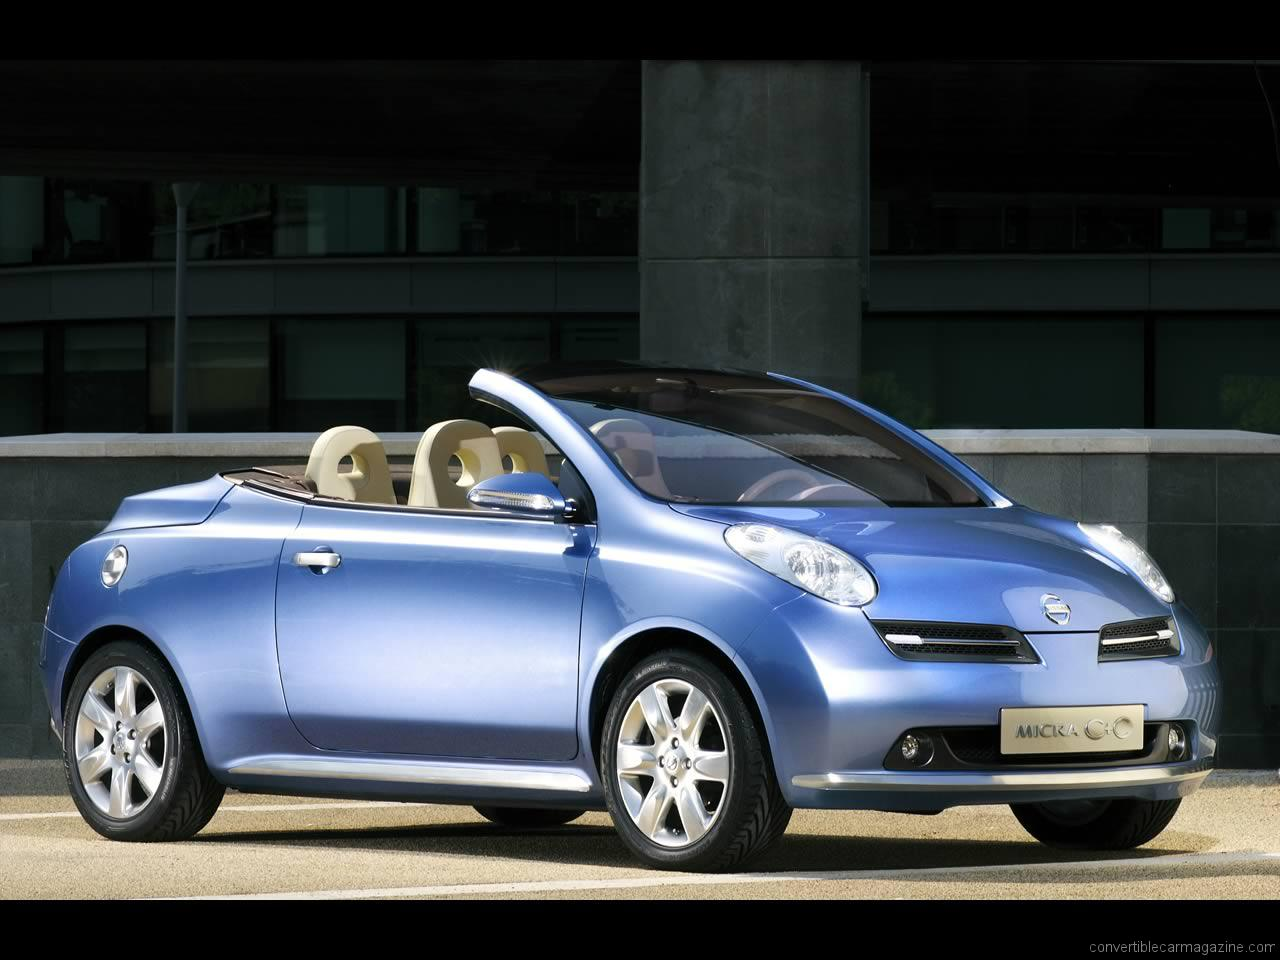 Nissan Micra C+C Buying Guide